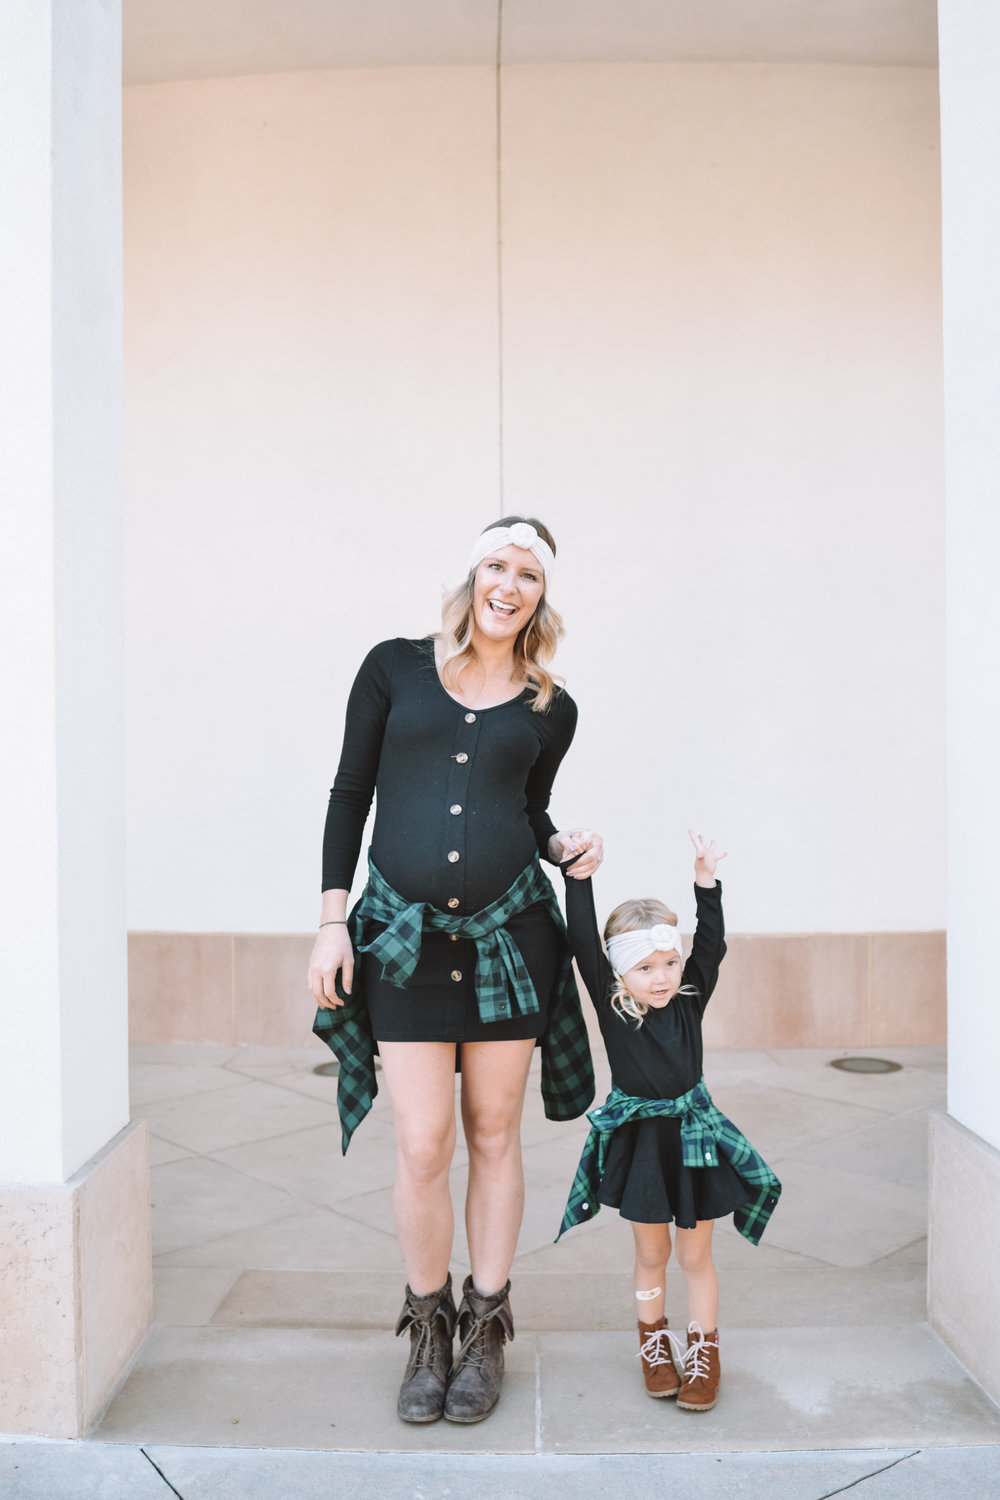 Mommy and Me Clothes Fashion - Green Baby Kids Flannel - The Overwhelmed Mommy Blogger